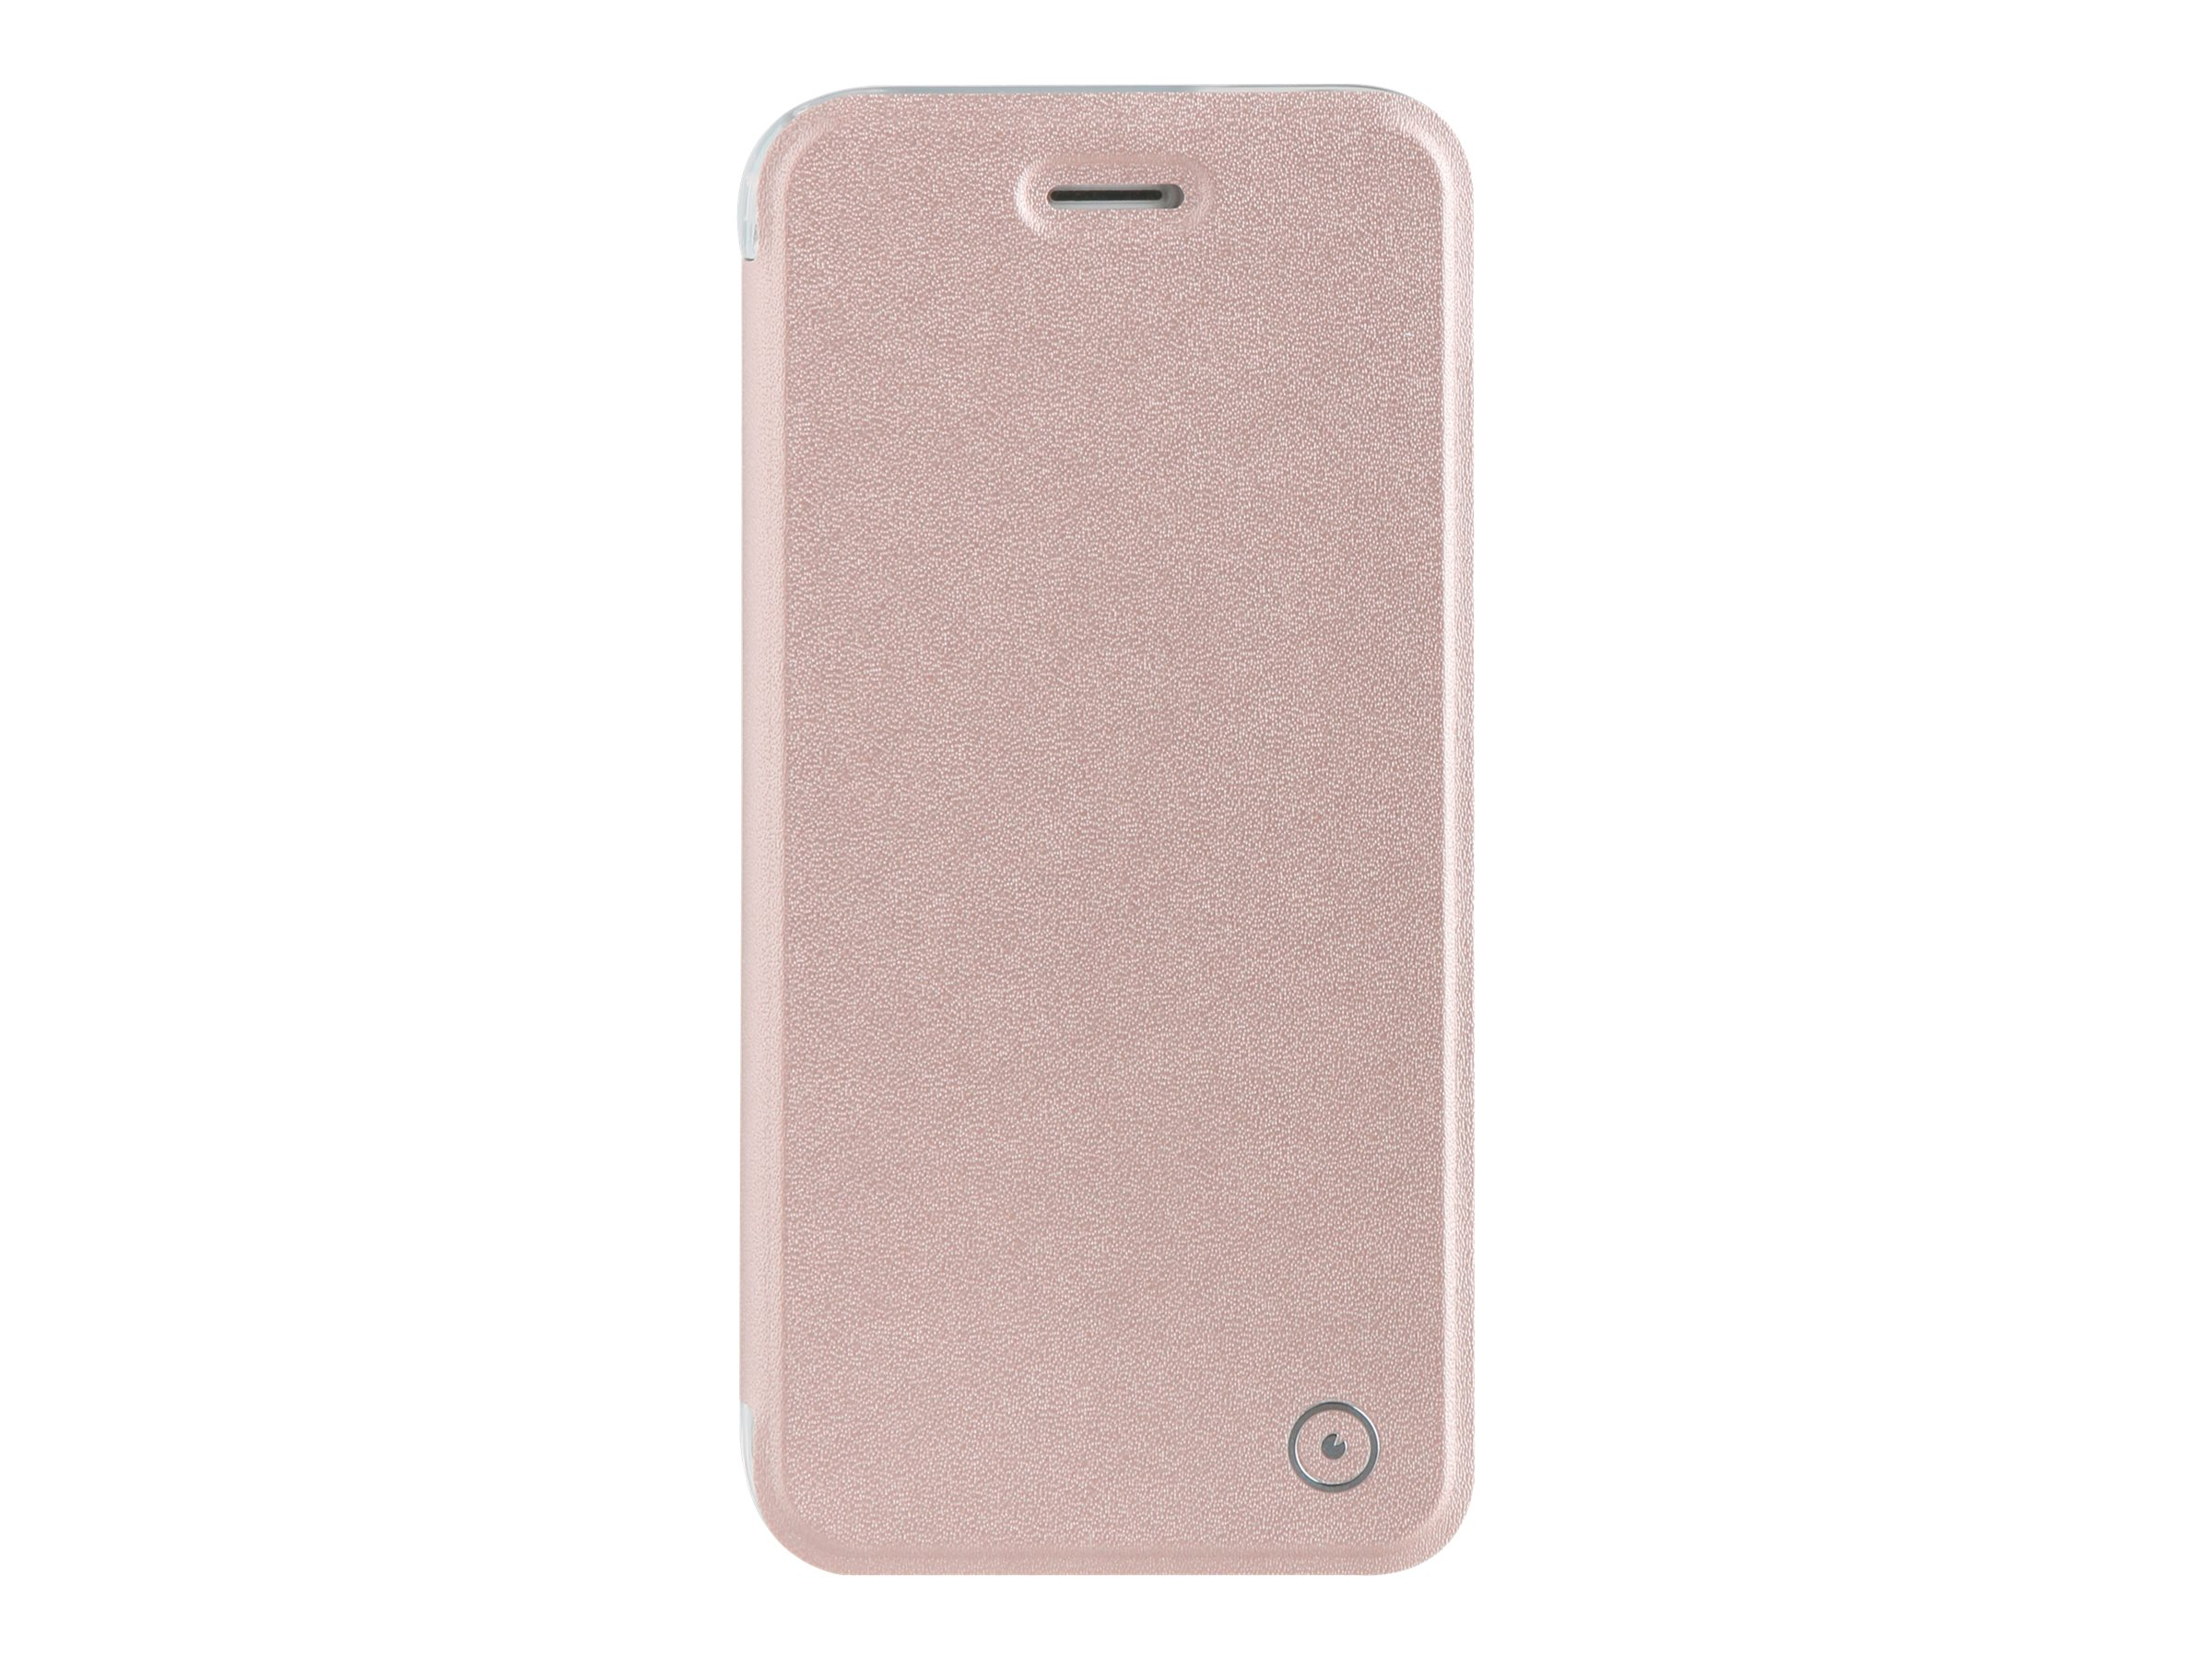 Muvit Folio - Protection à rabat pour iPhone 7 - transparent, or rose